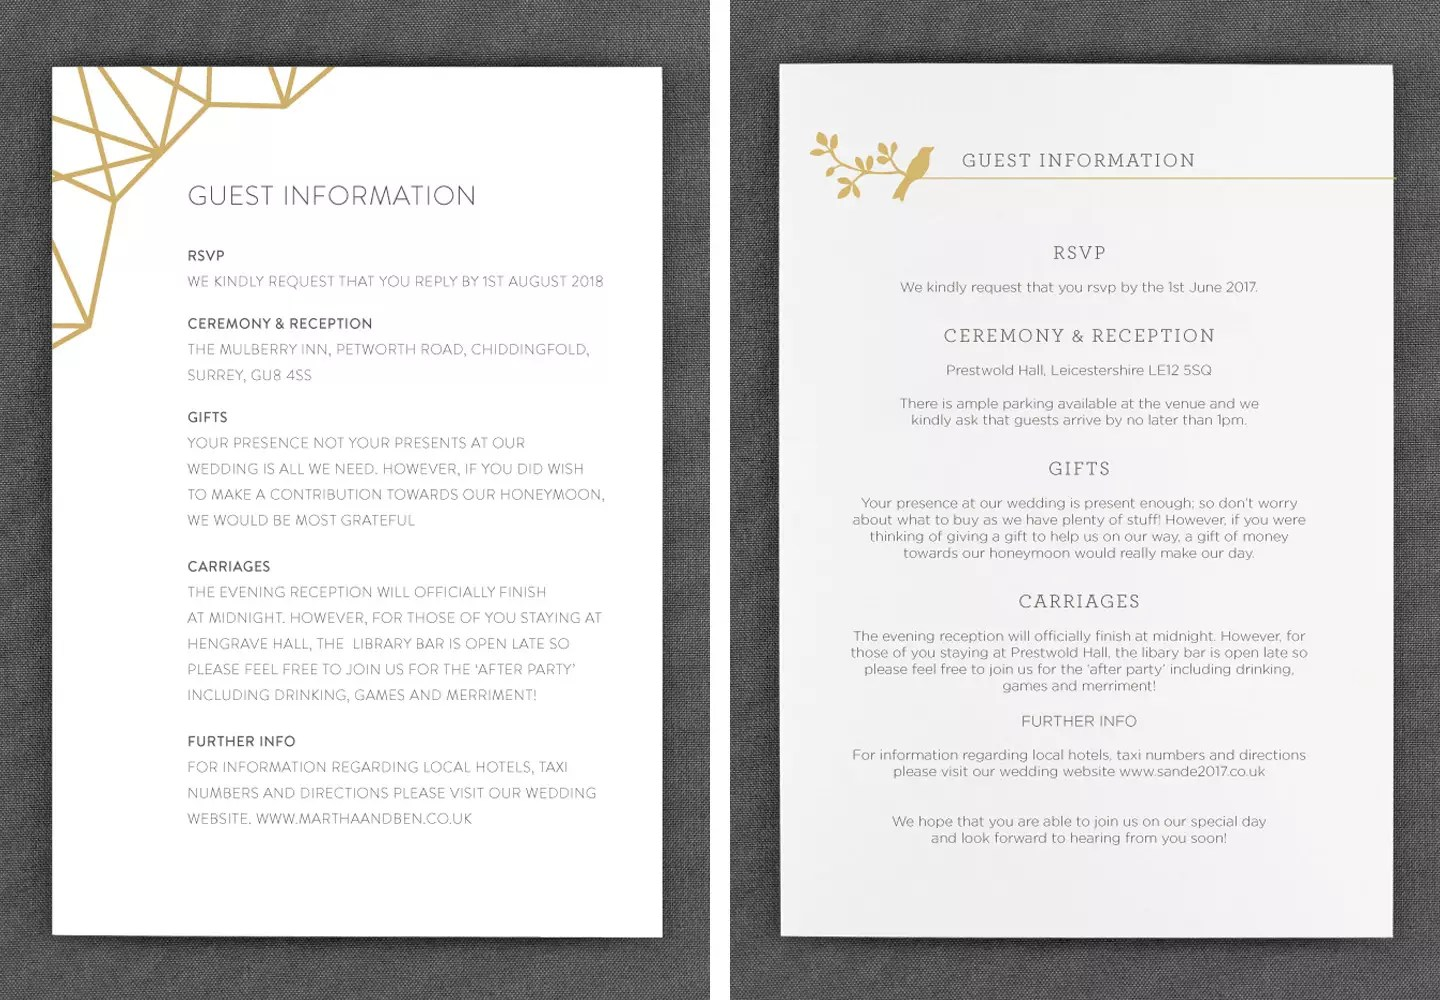 Wedding Guest Information Cards What To Include Foil Invite Co Blog